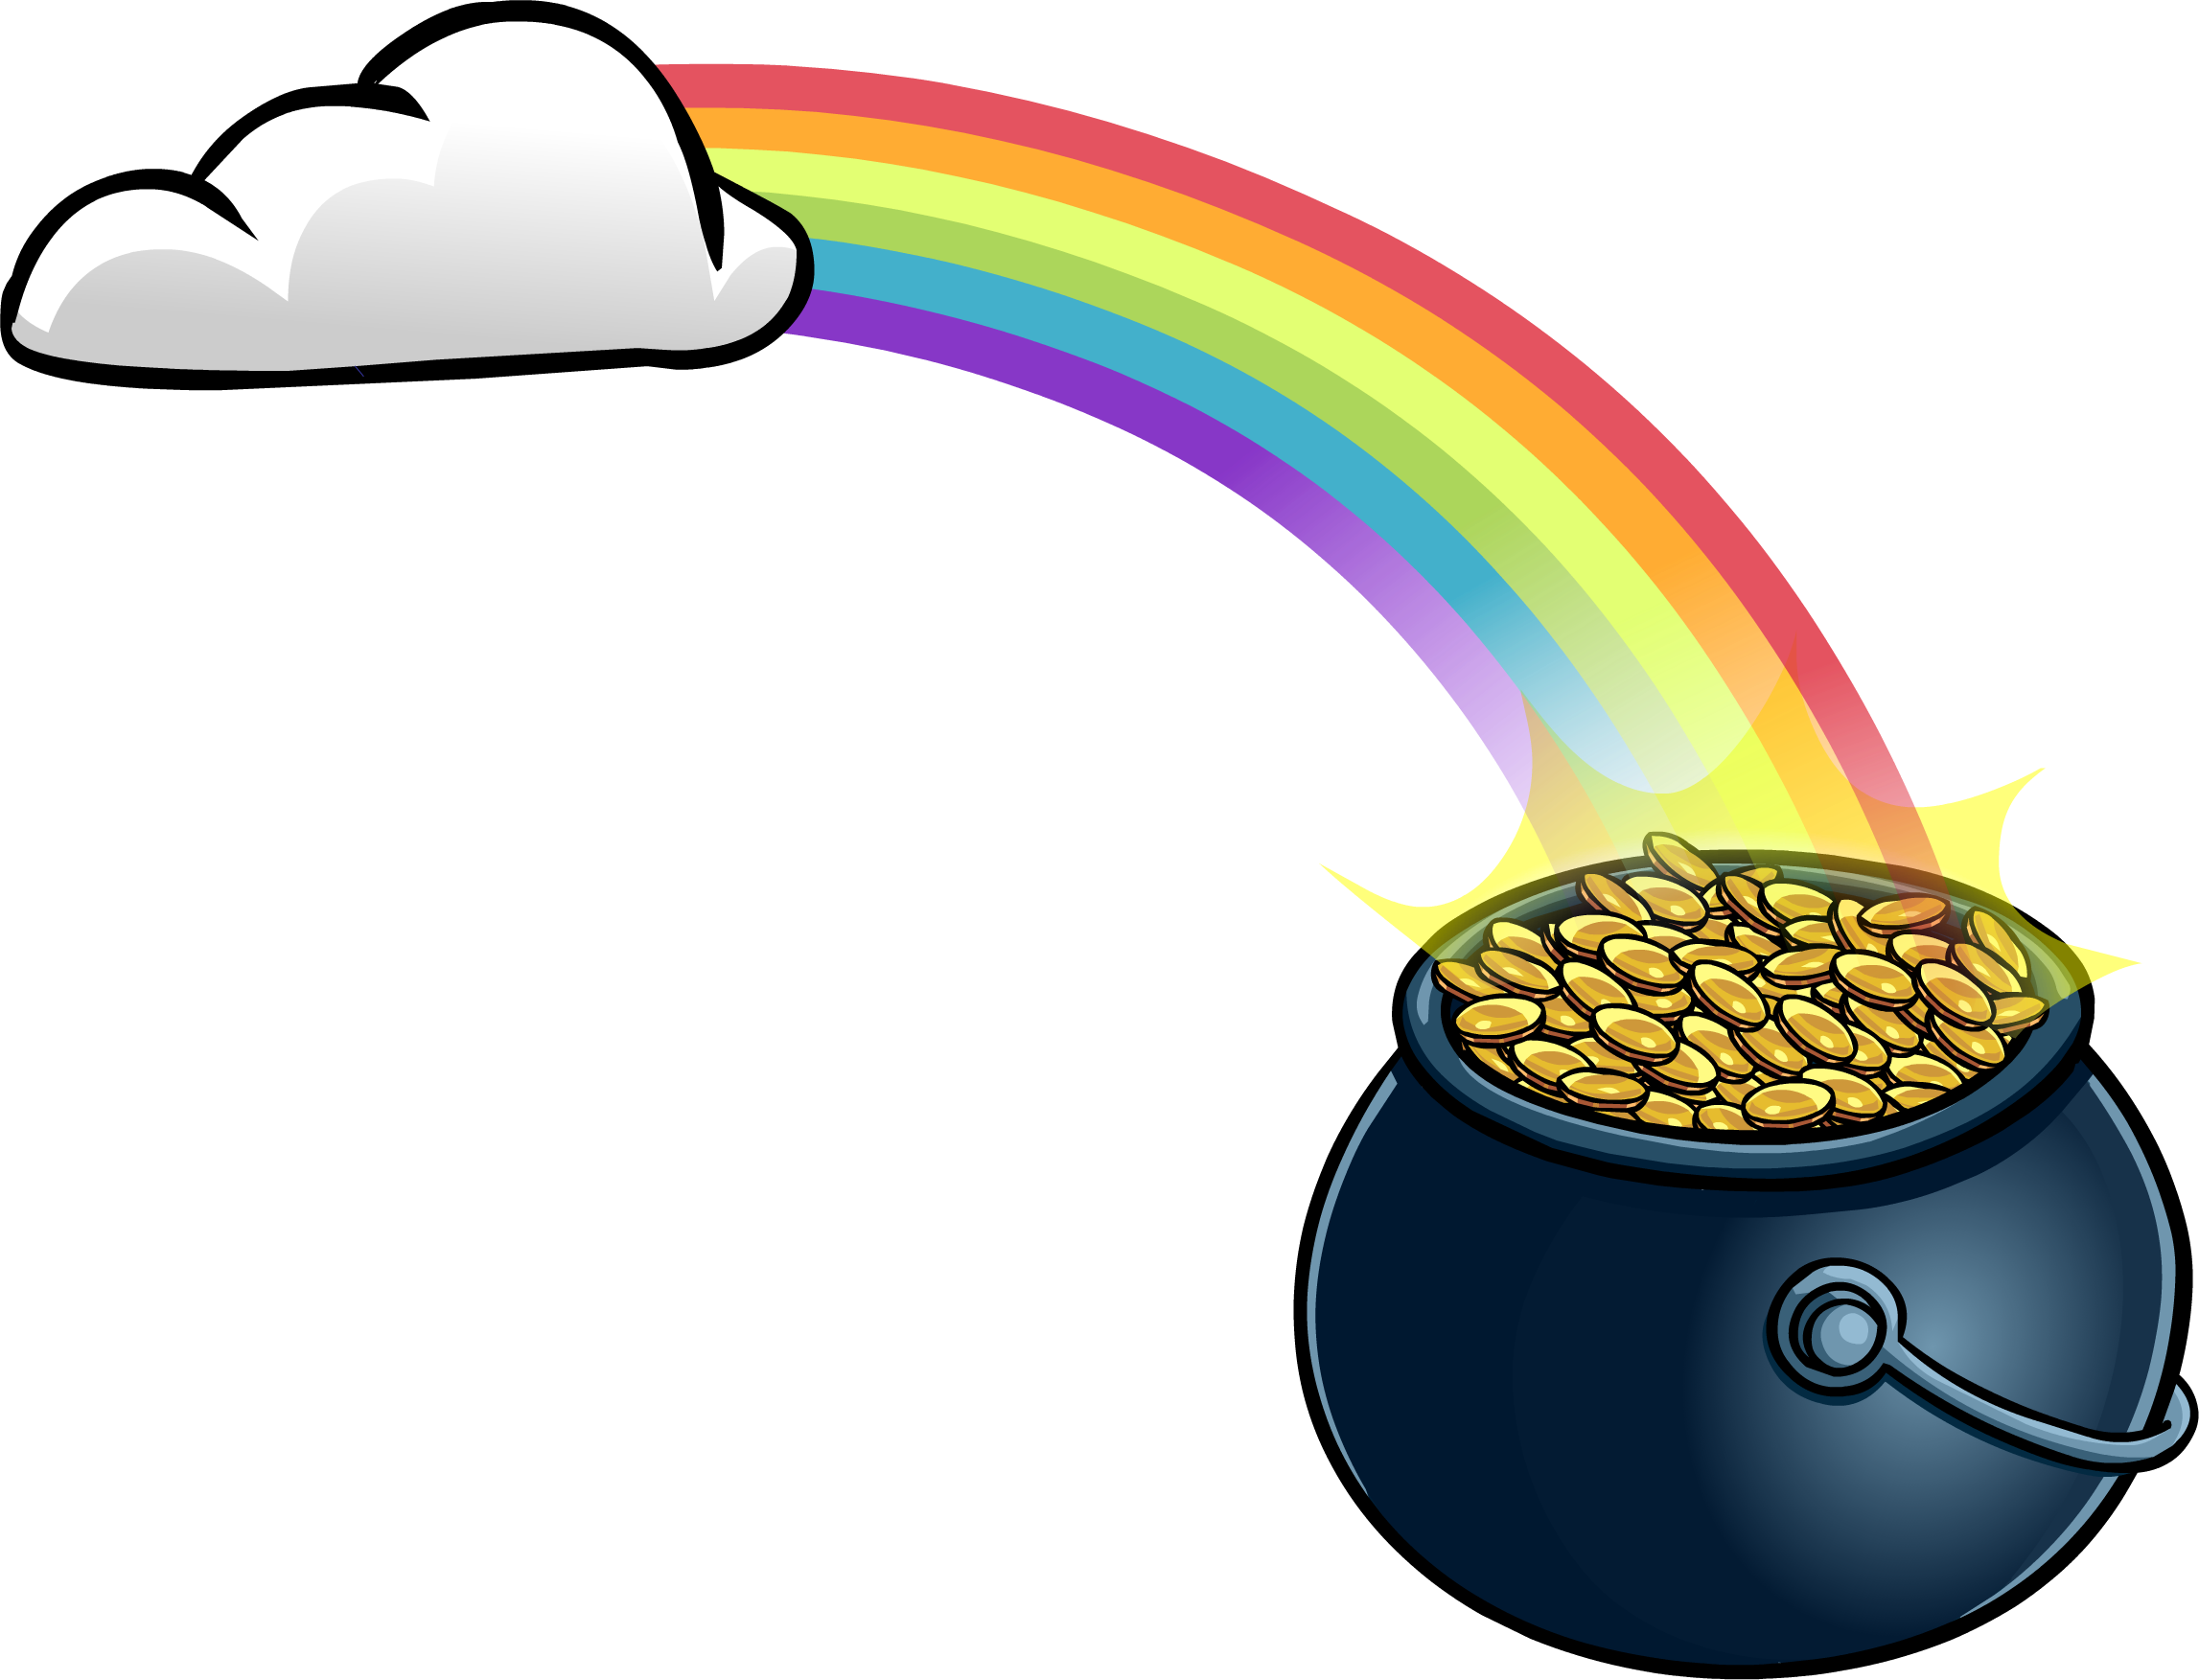 2294x1753 Rainbow With Pot O' Gold Club Penguin Wiki Fandom Powered By Wikia